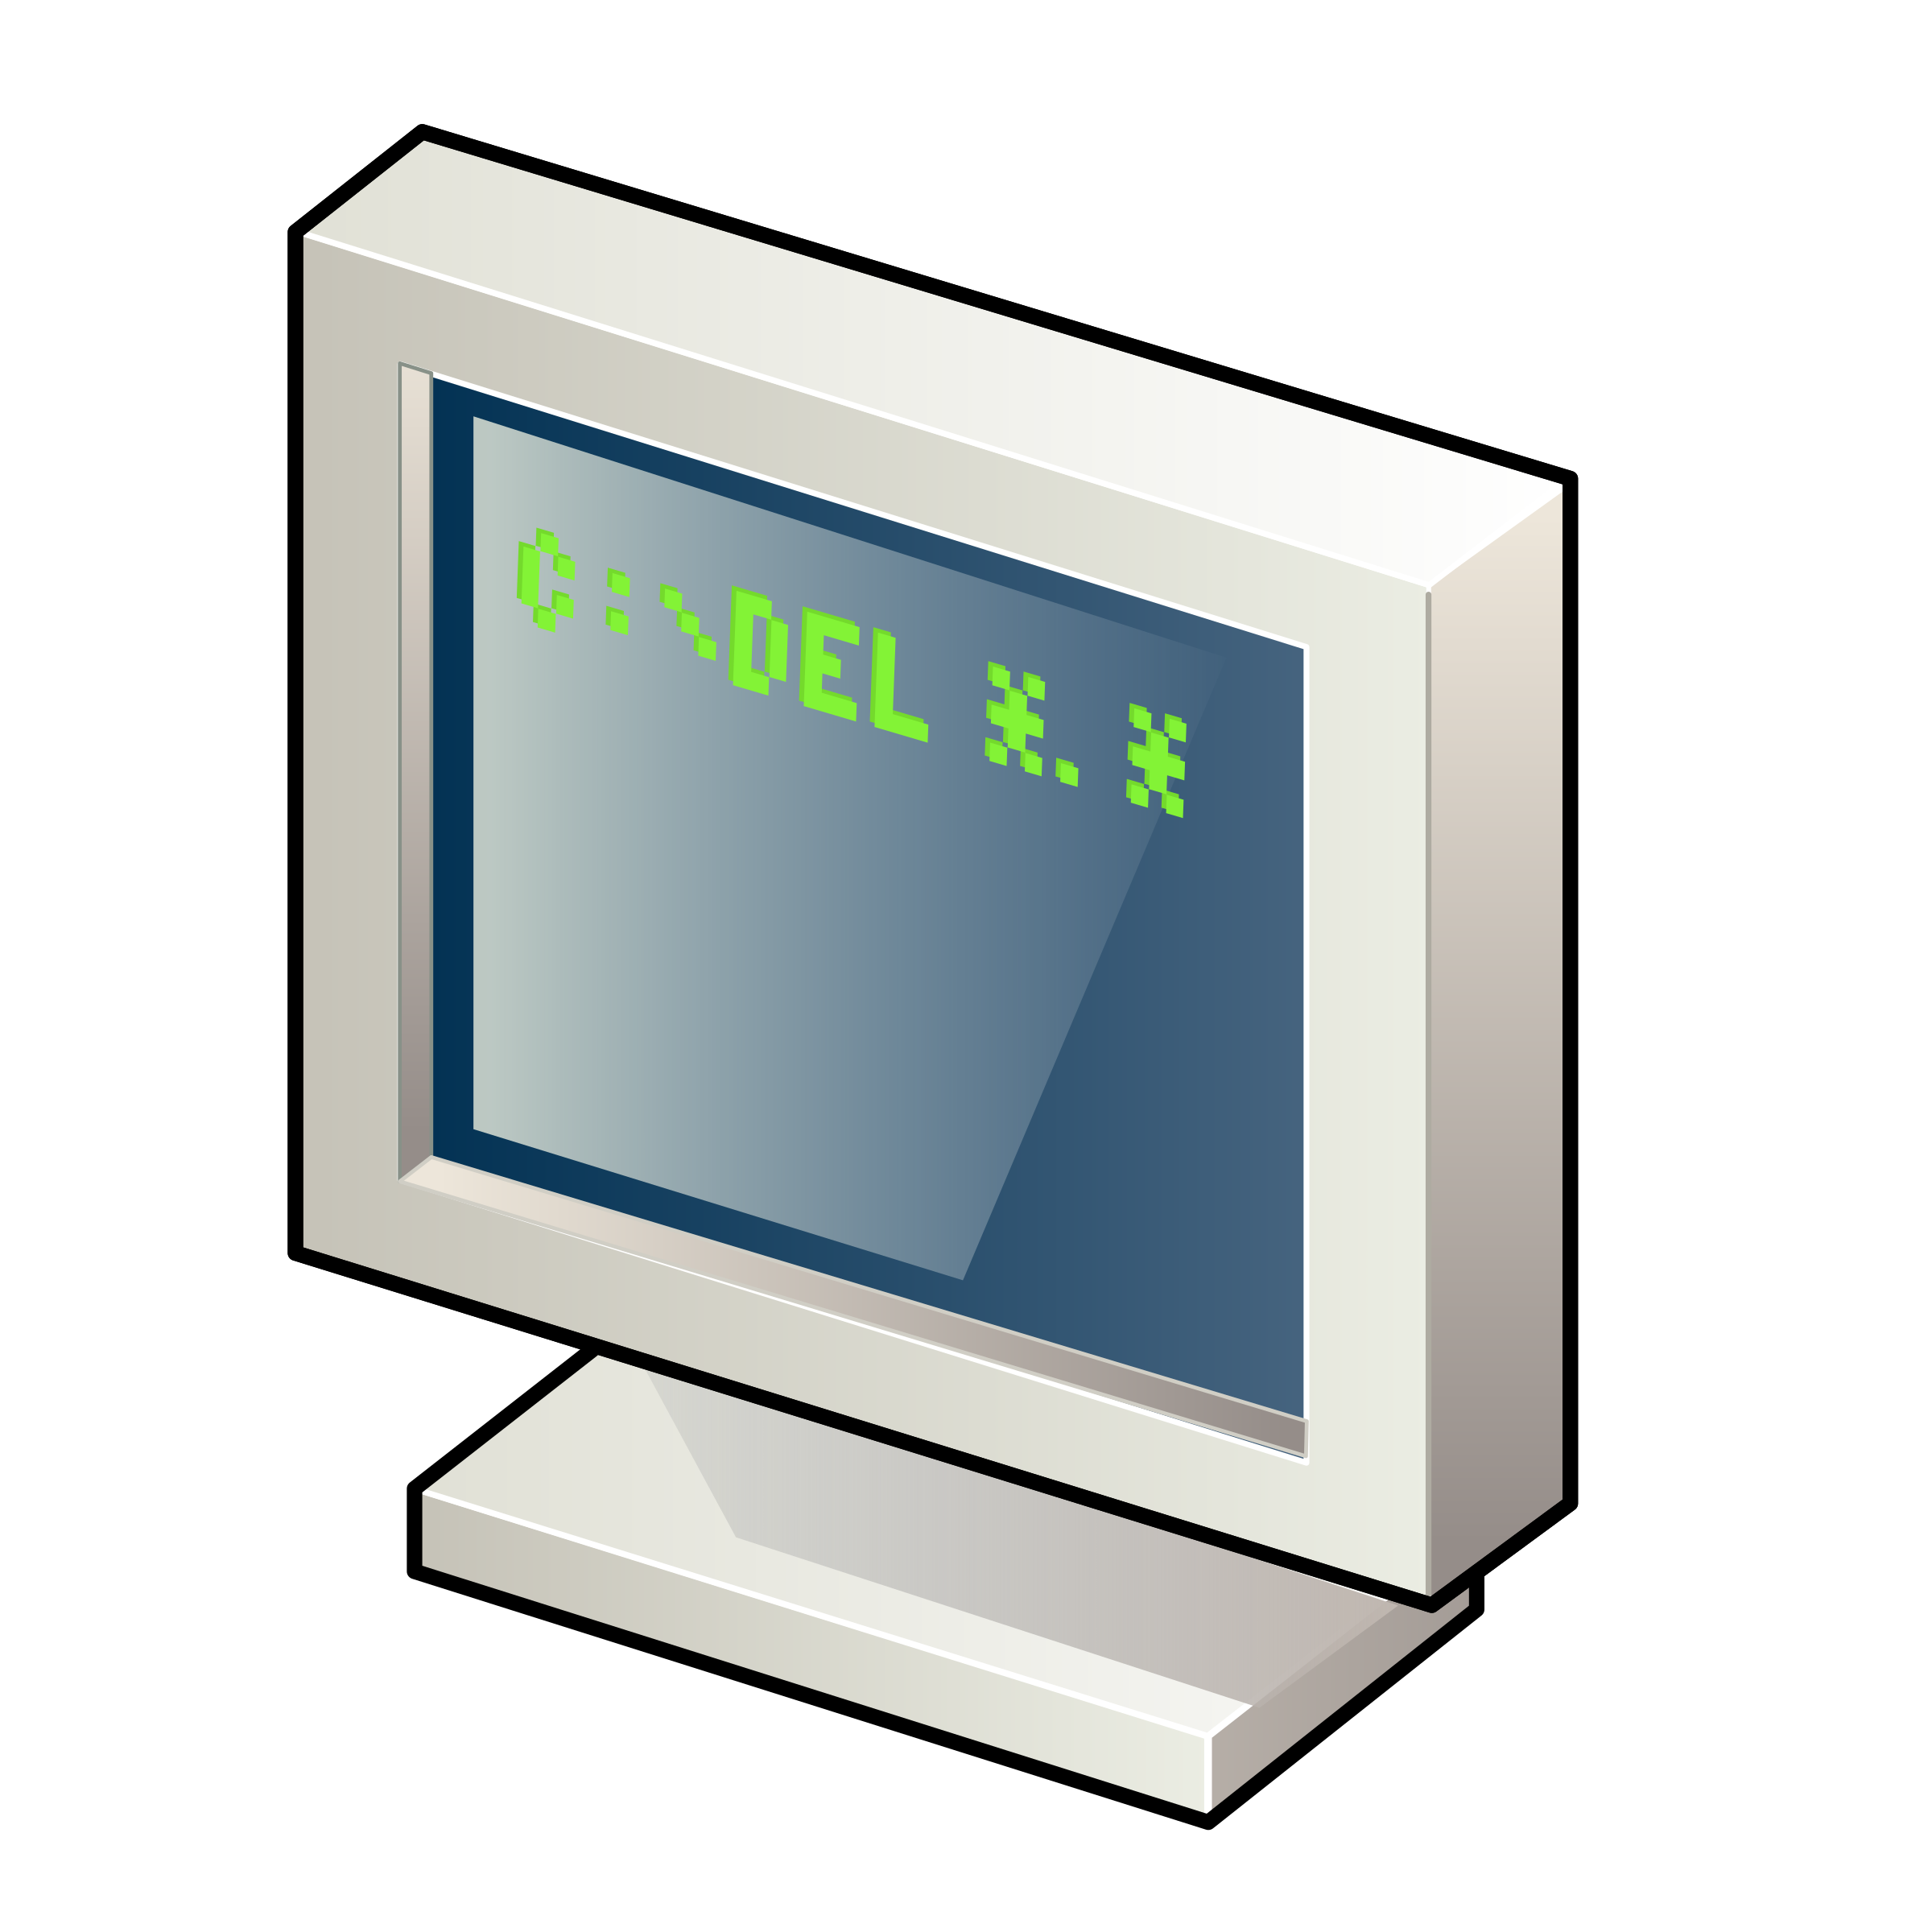 Computer with DOS Screen vector clipart image.